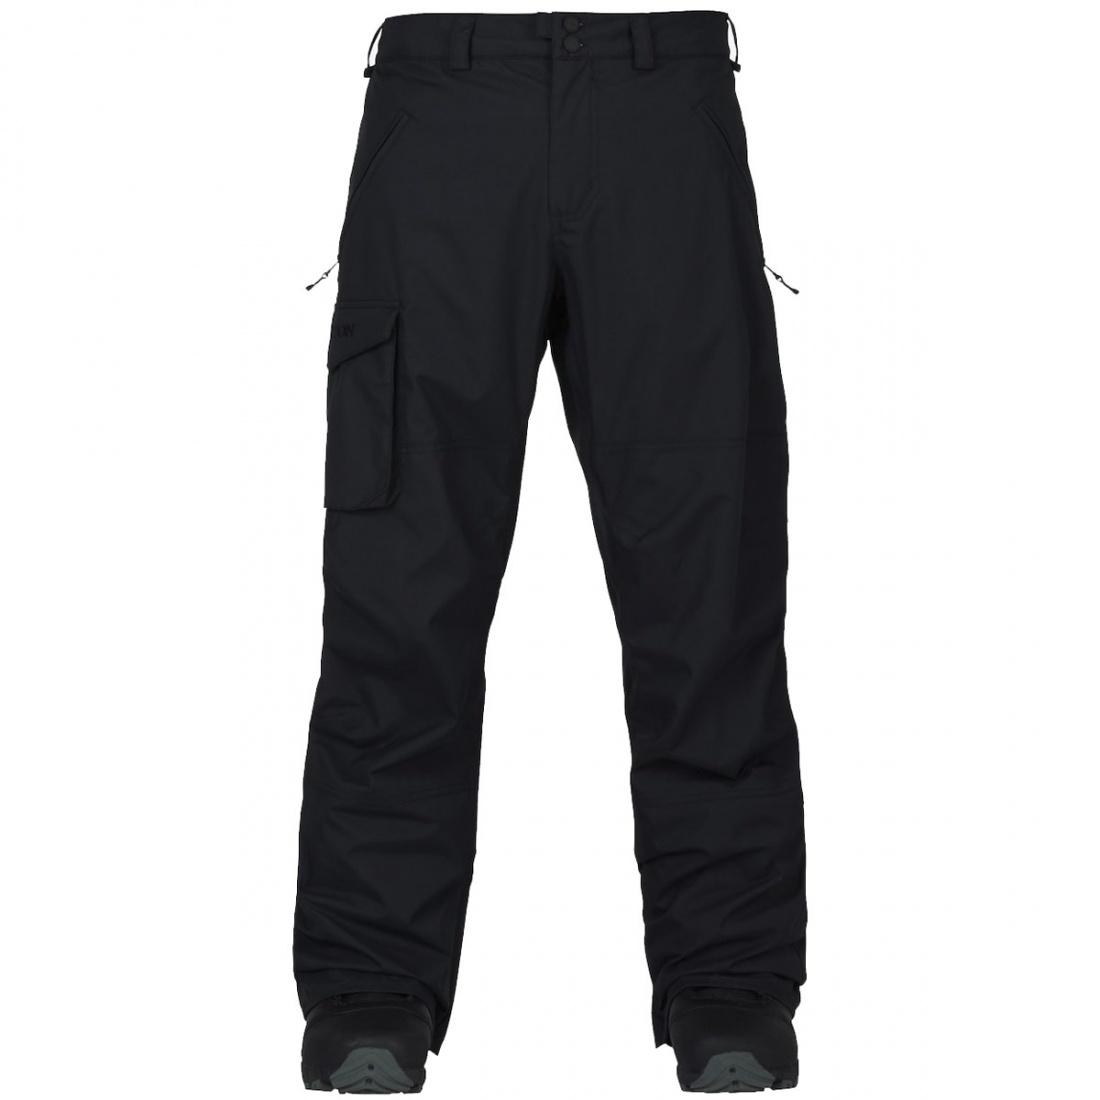 Burton Штаны для сноуборда Burton Insulated Covert Pant TRUE BLACK S маска для сноуборда женская roxy sunset art series true black savanna